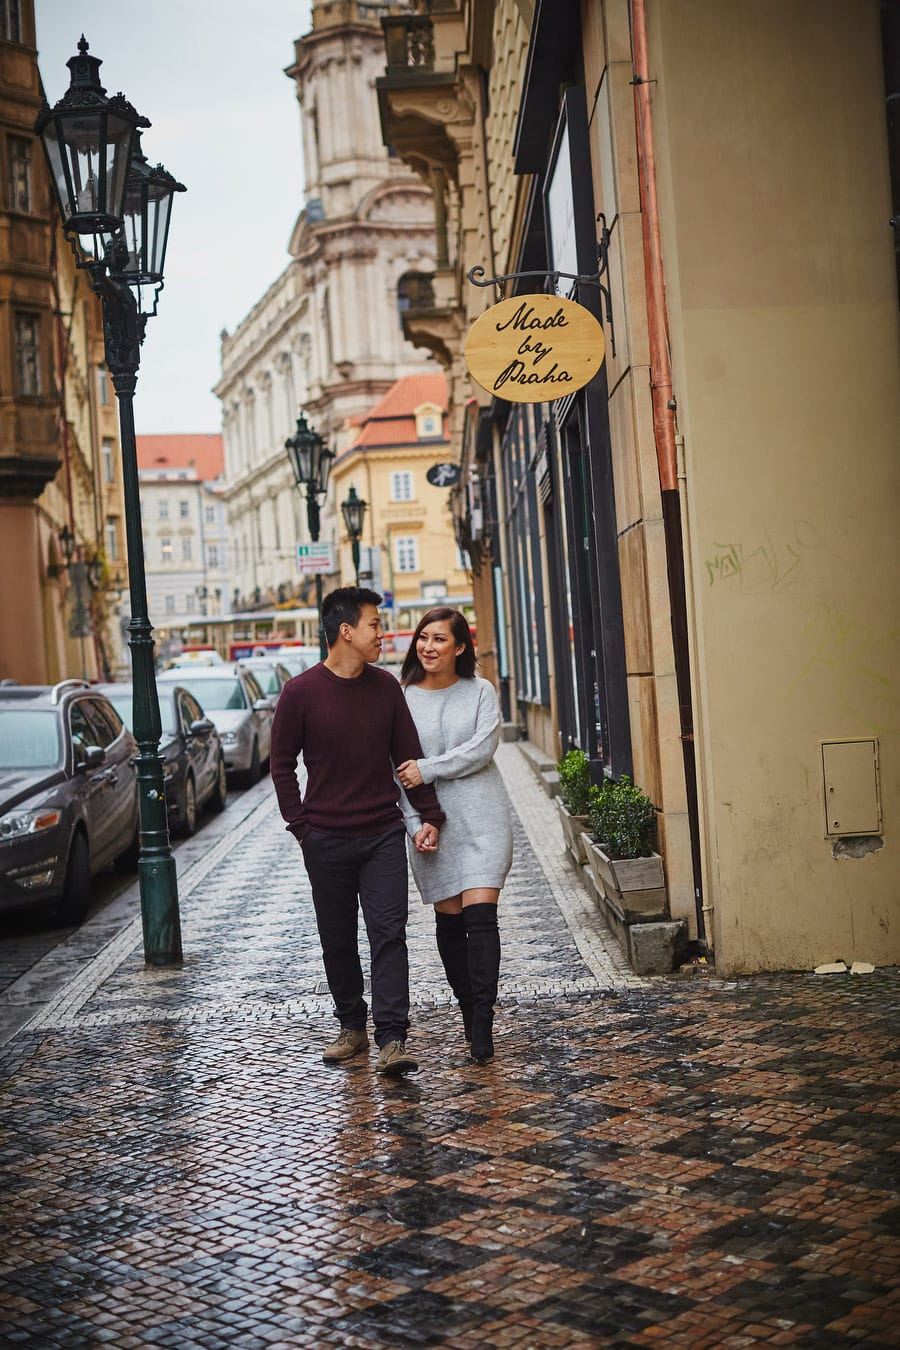 Prague, stylish young couple walking, holding hands, street scene